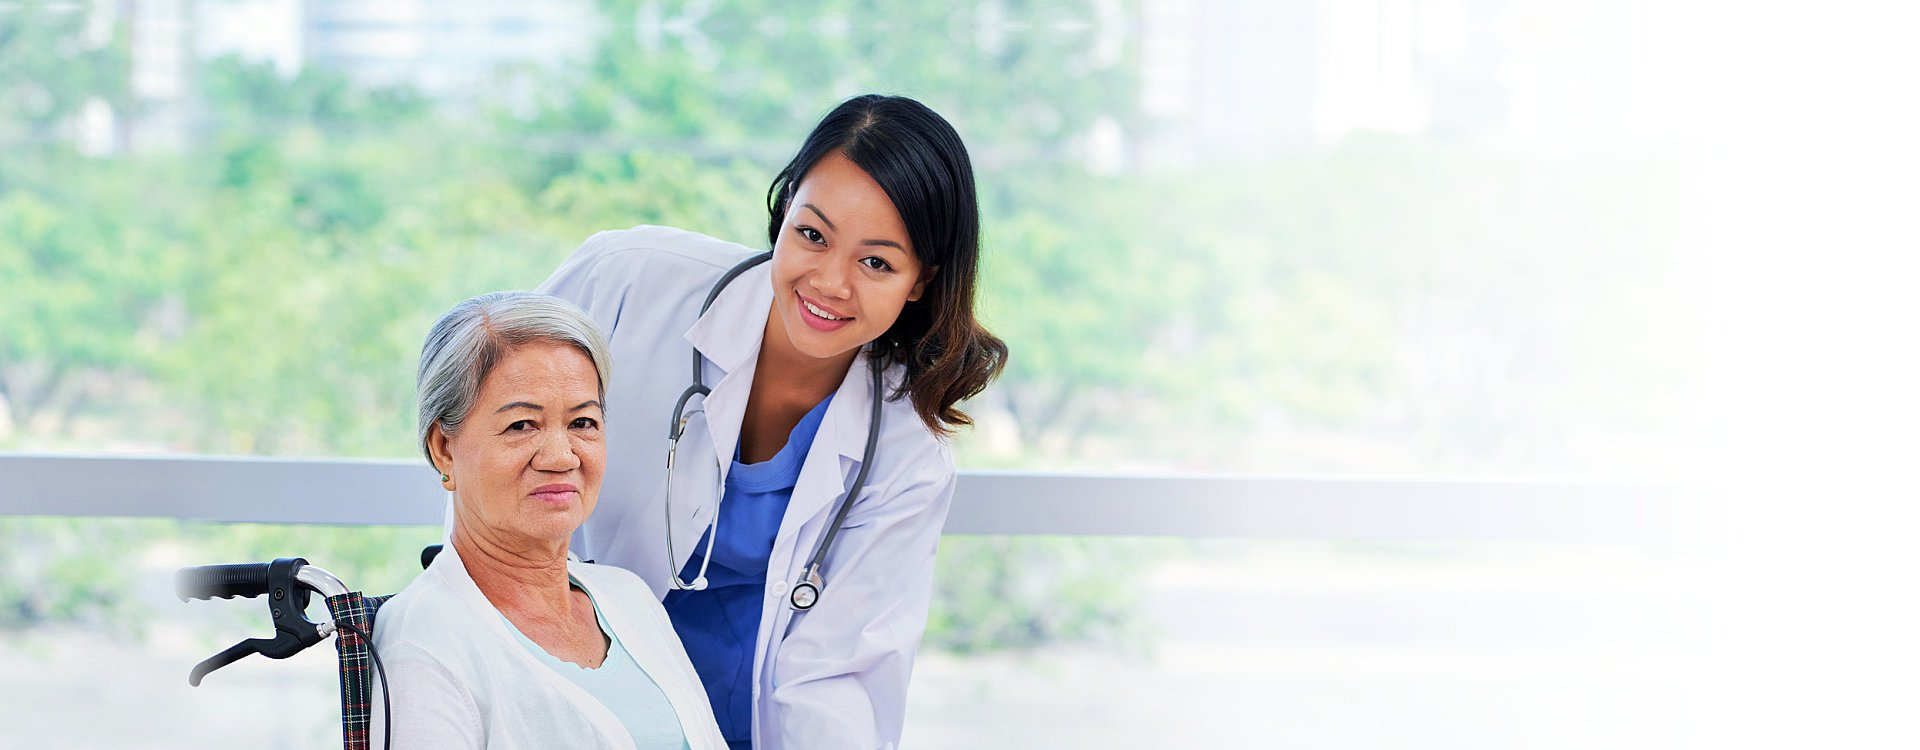 Doctor caring about elderly woman